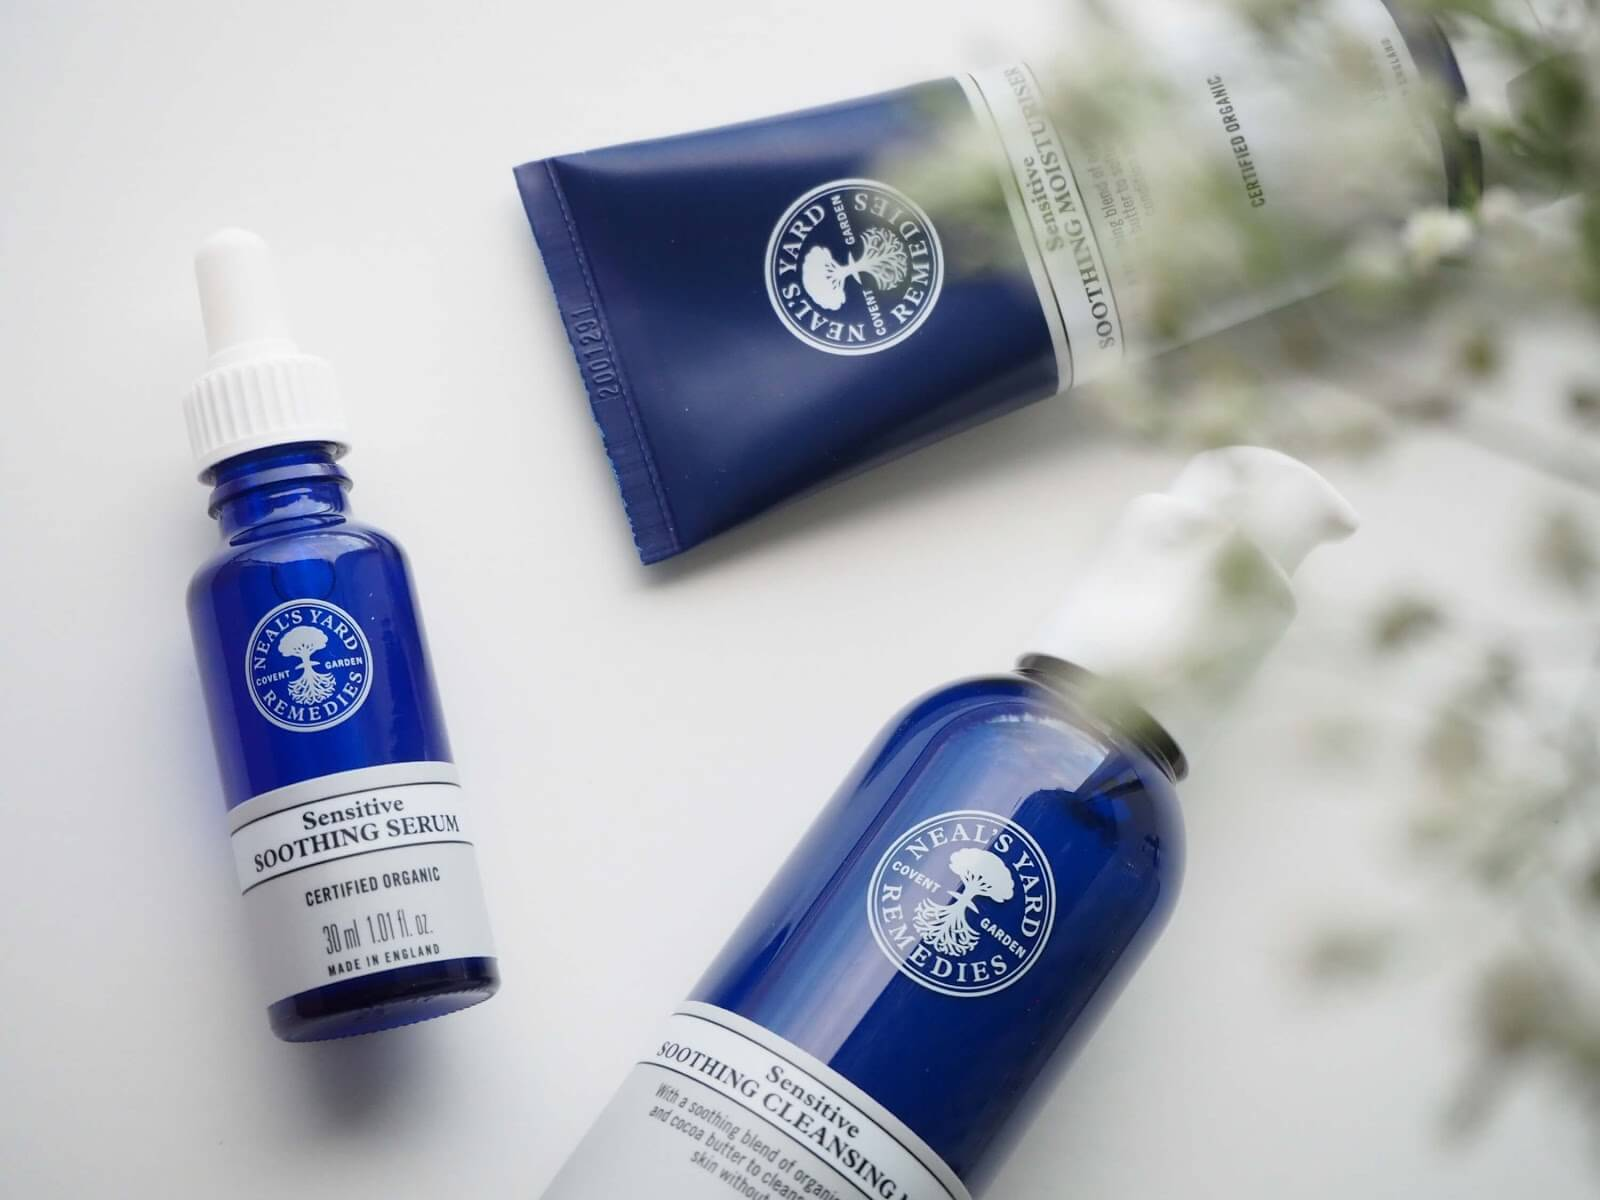 neals yard remedies sensitive